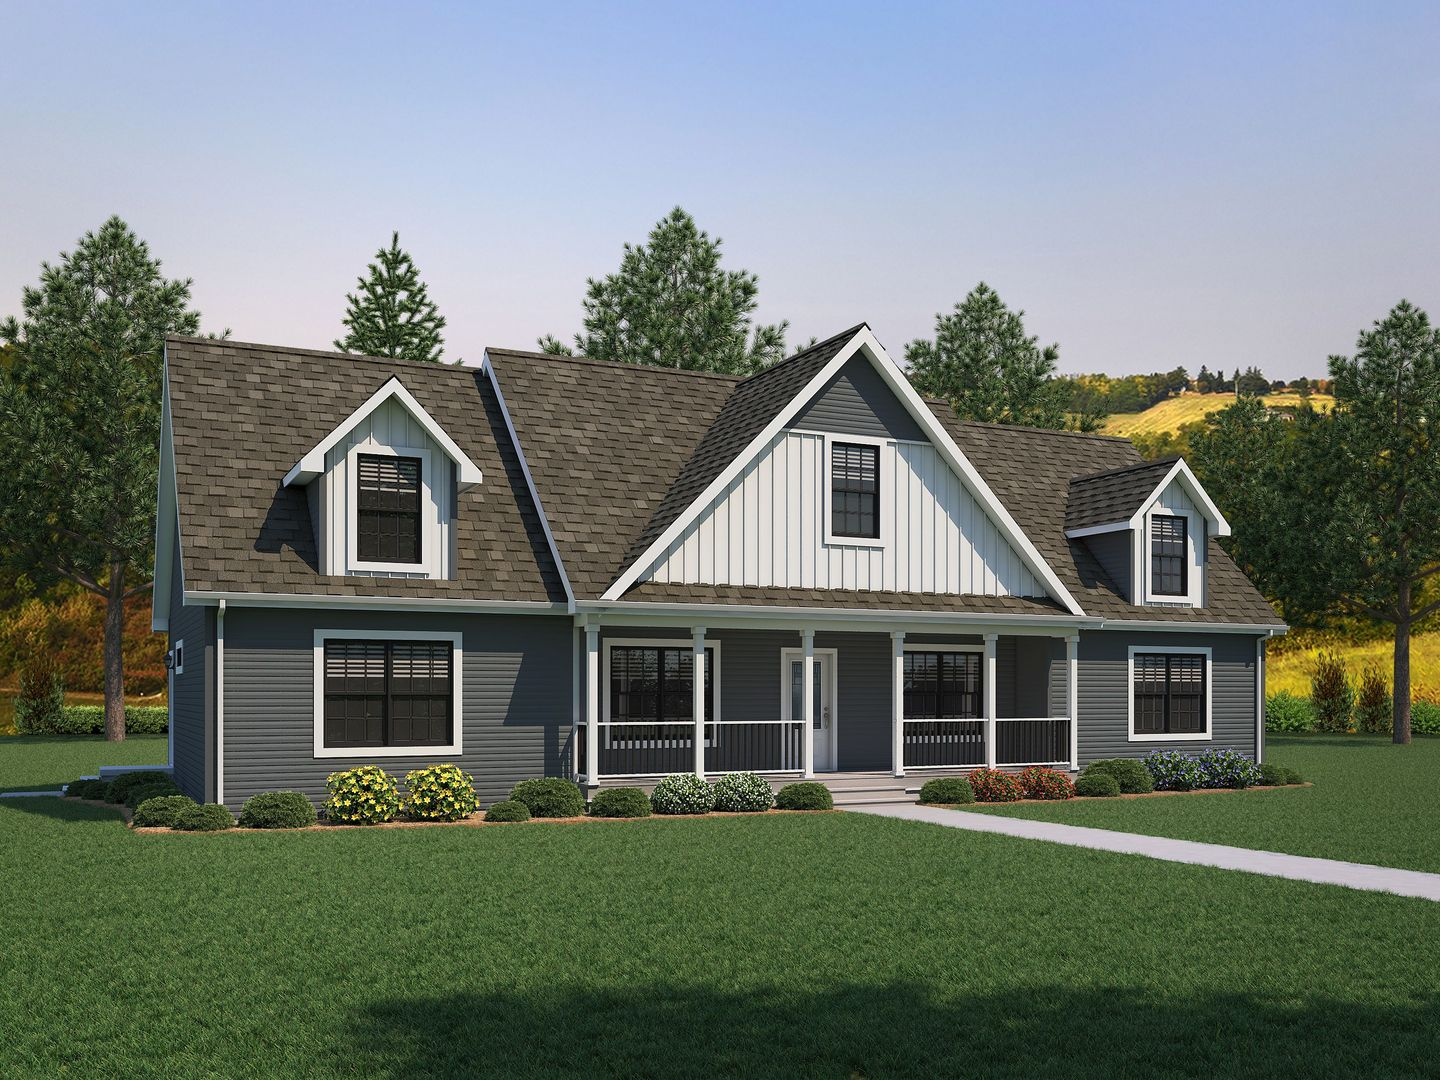 hight resolution of r anell homes summit saddle modular ranch home